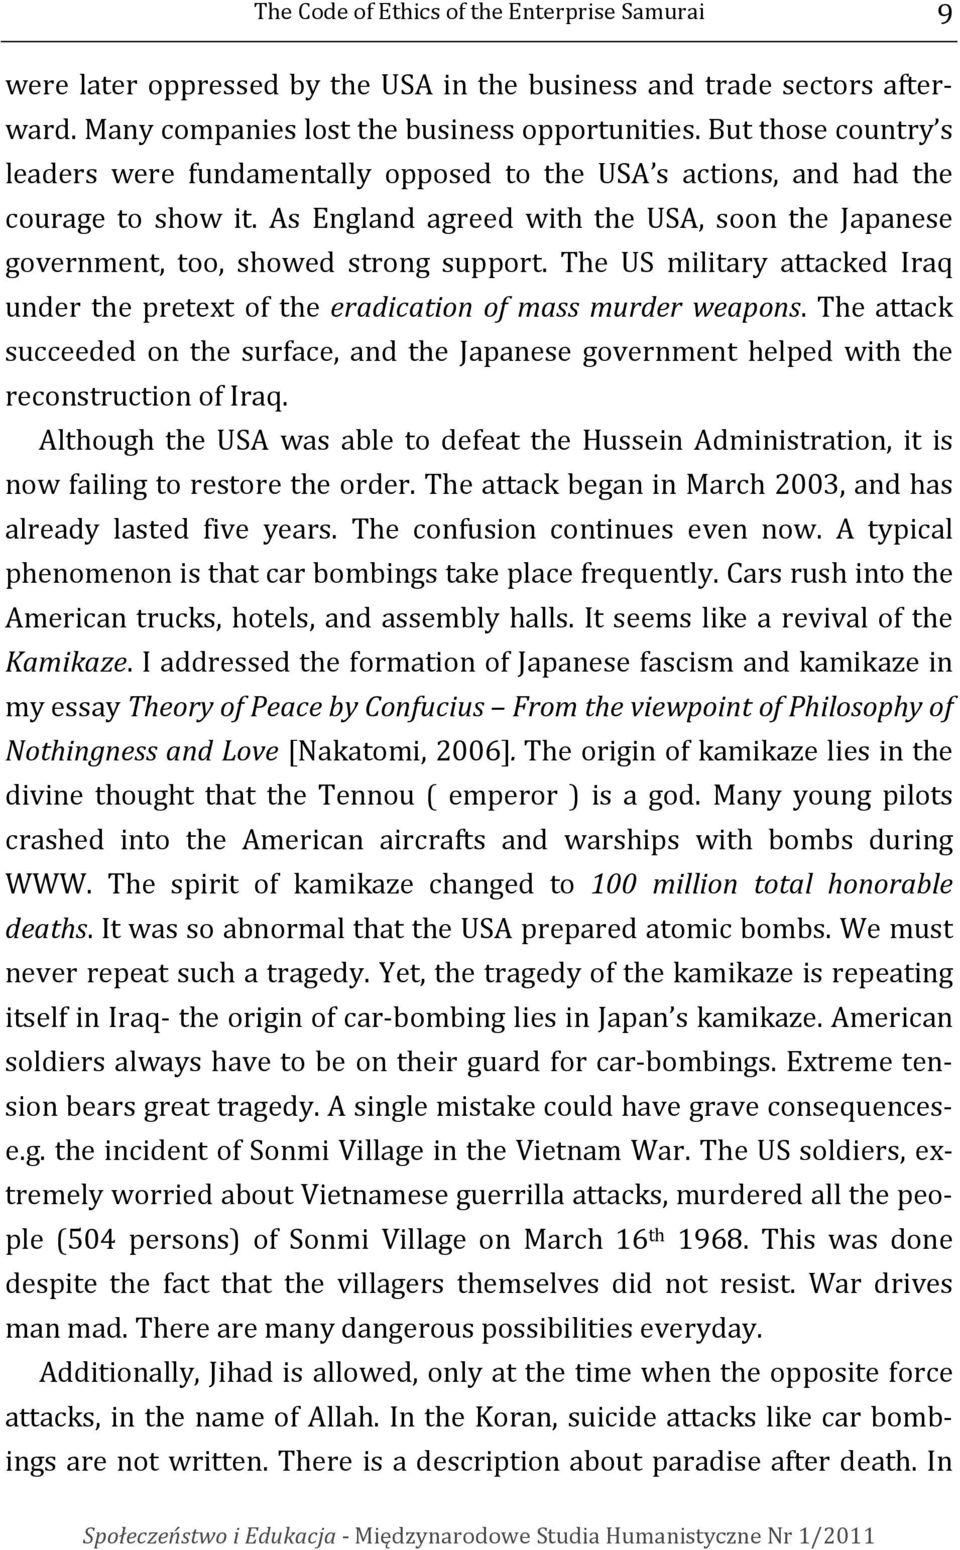 The US military attacked Iraq under the pretext of the eradication of mass murder weapons. The attack succeeded on the surface, and the Japanese government helped with the reconstruction of Iraq.